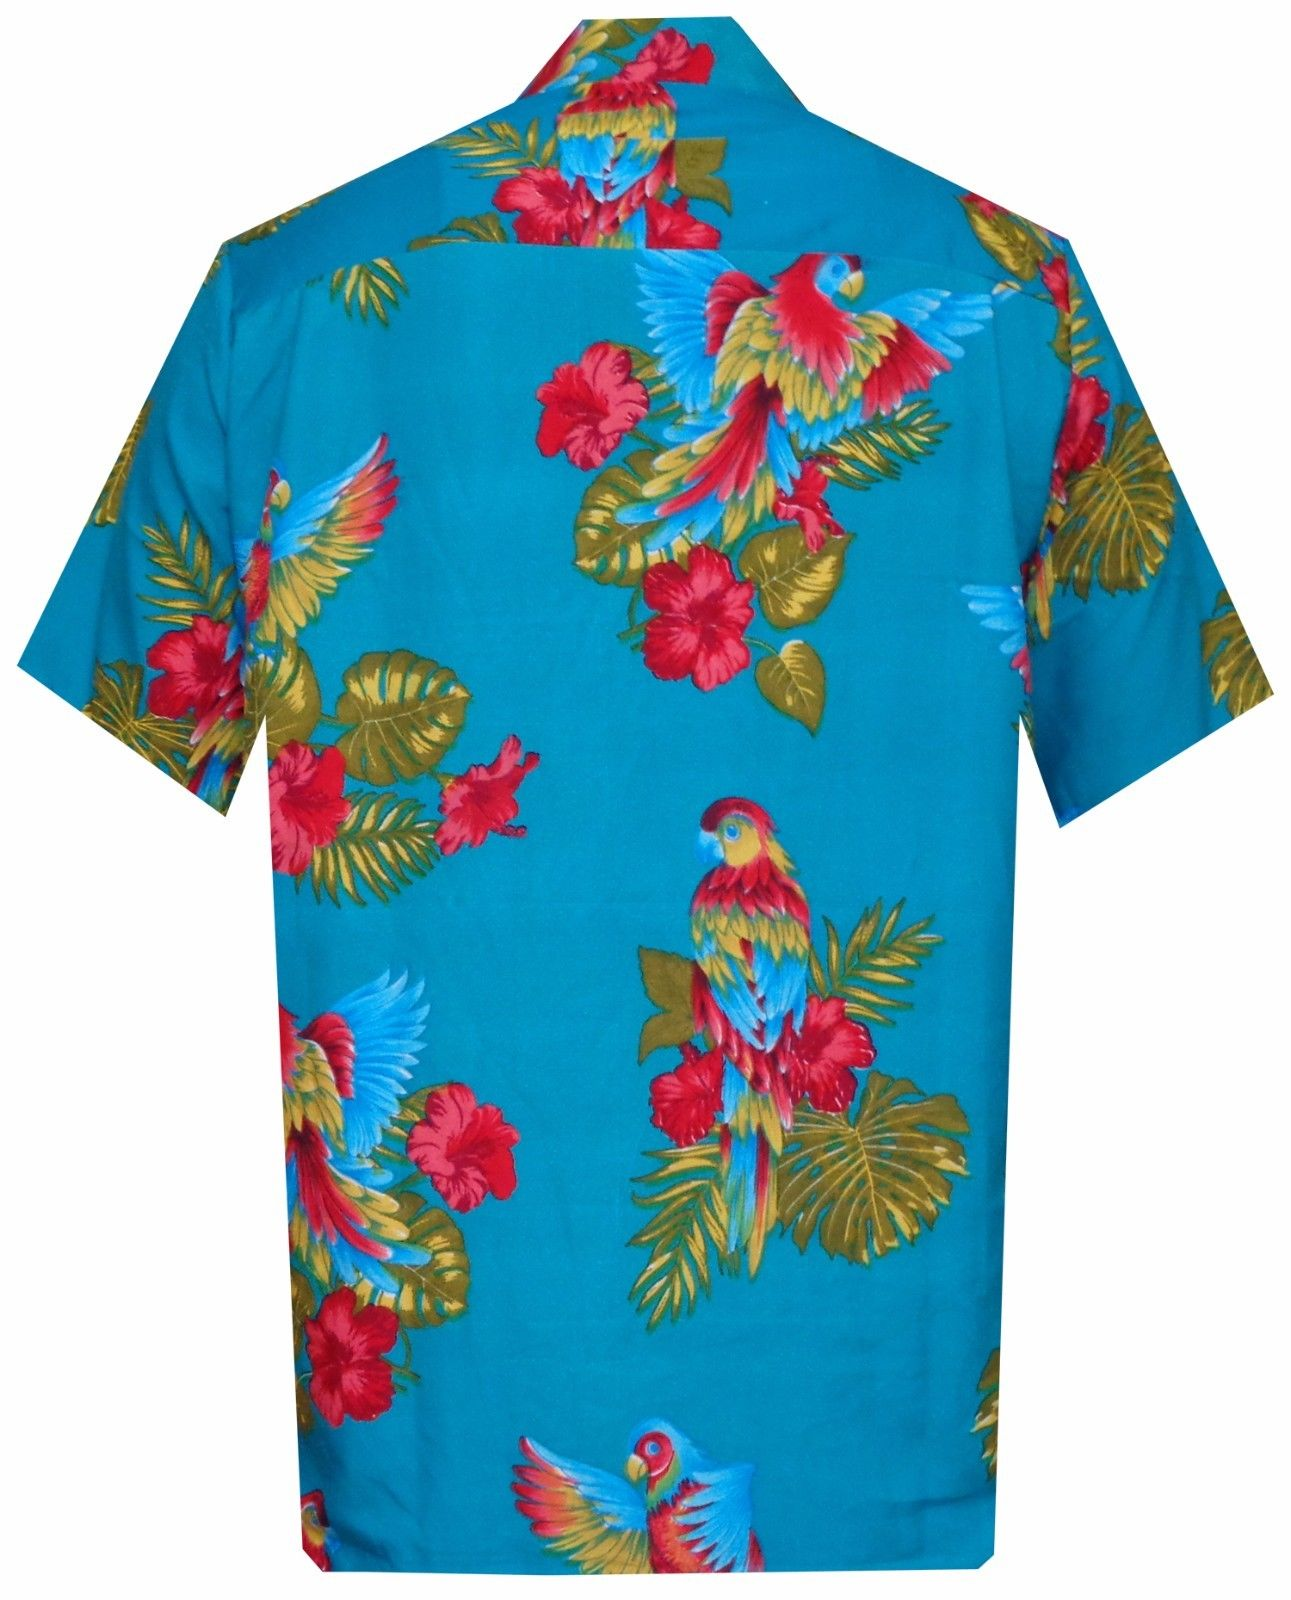 Hawaiian Shirt Mens Parrot/Toucan Print Beach Aloha Party | eBay